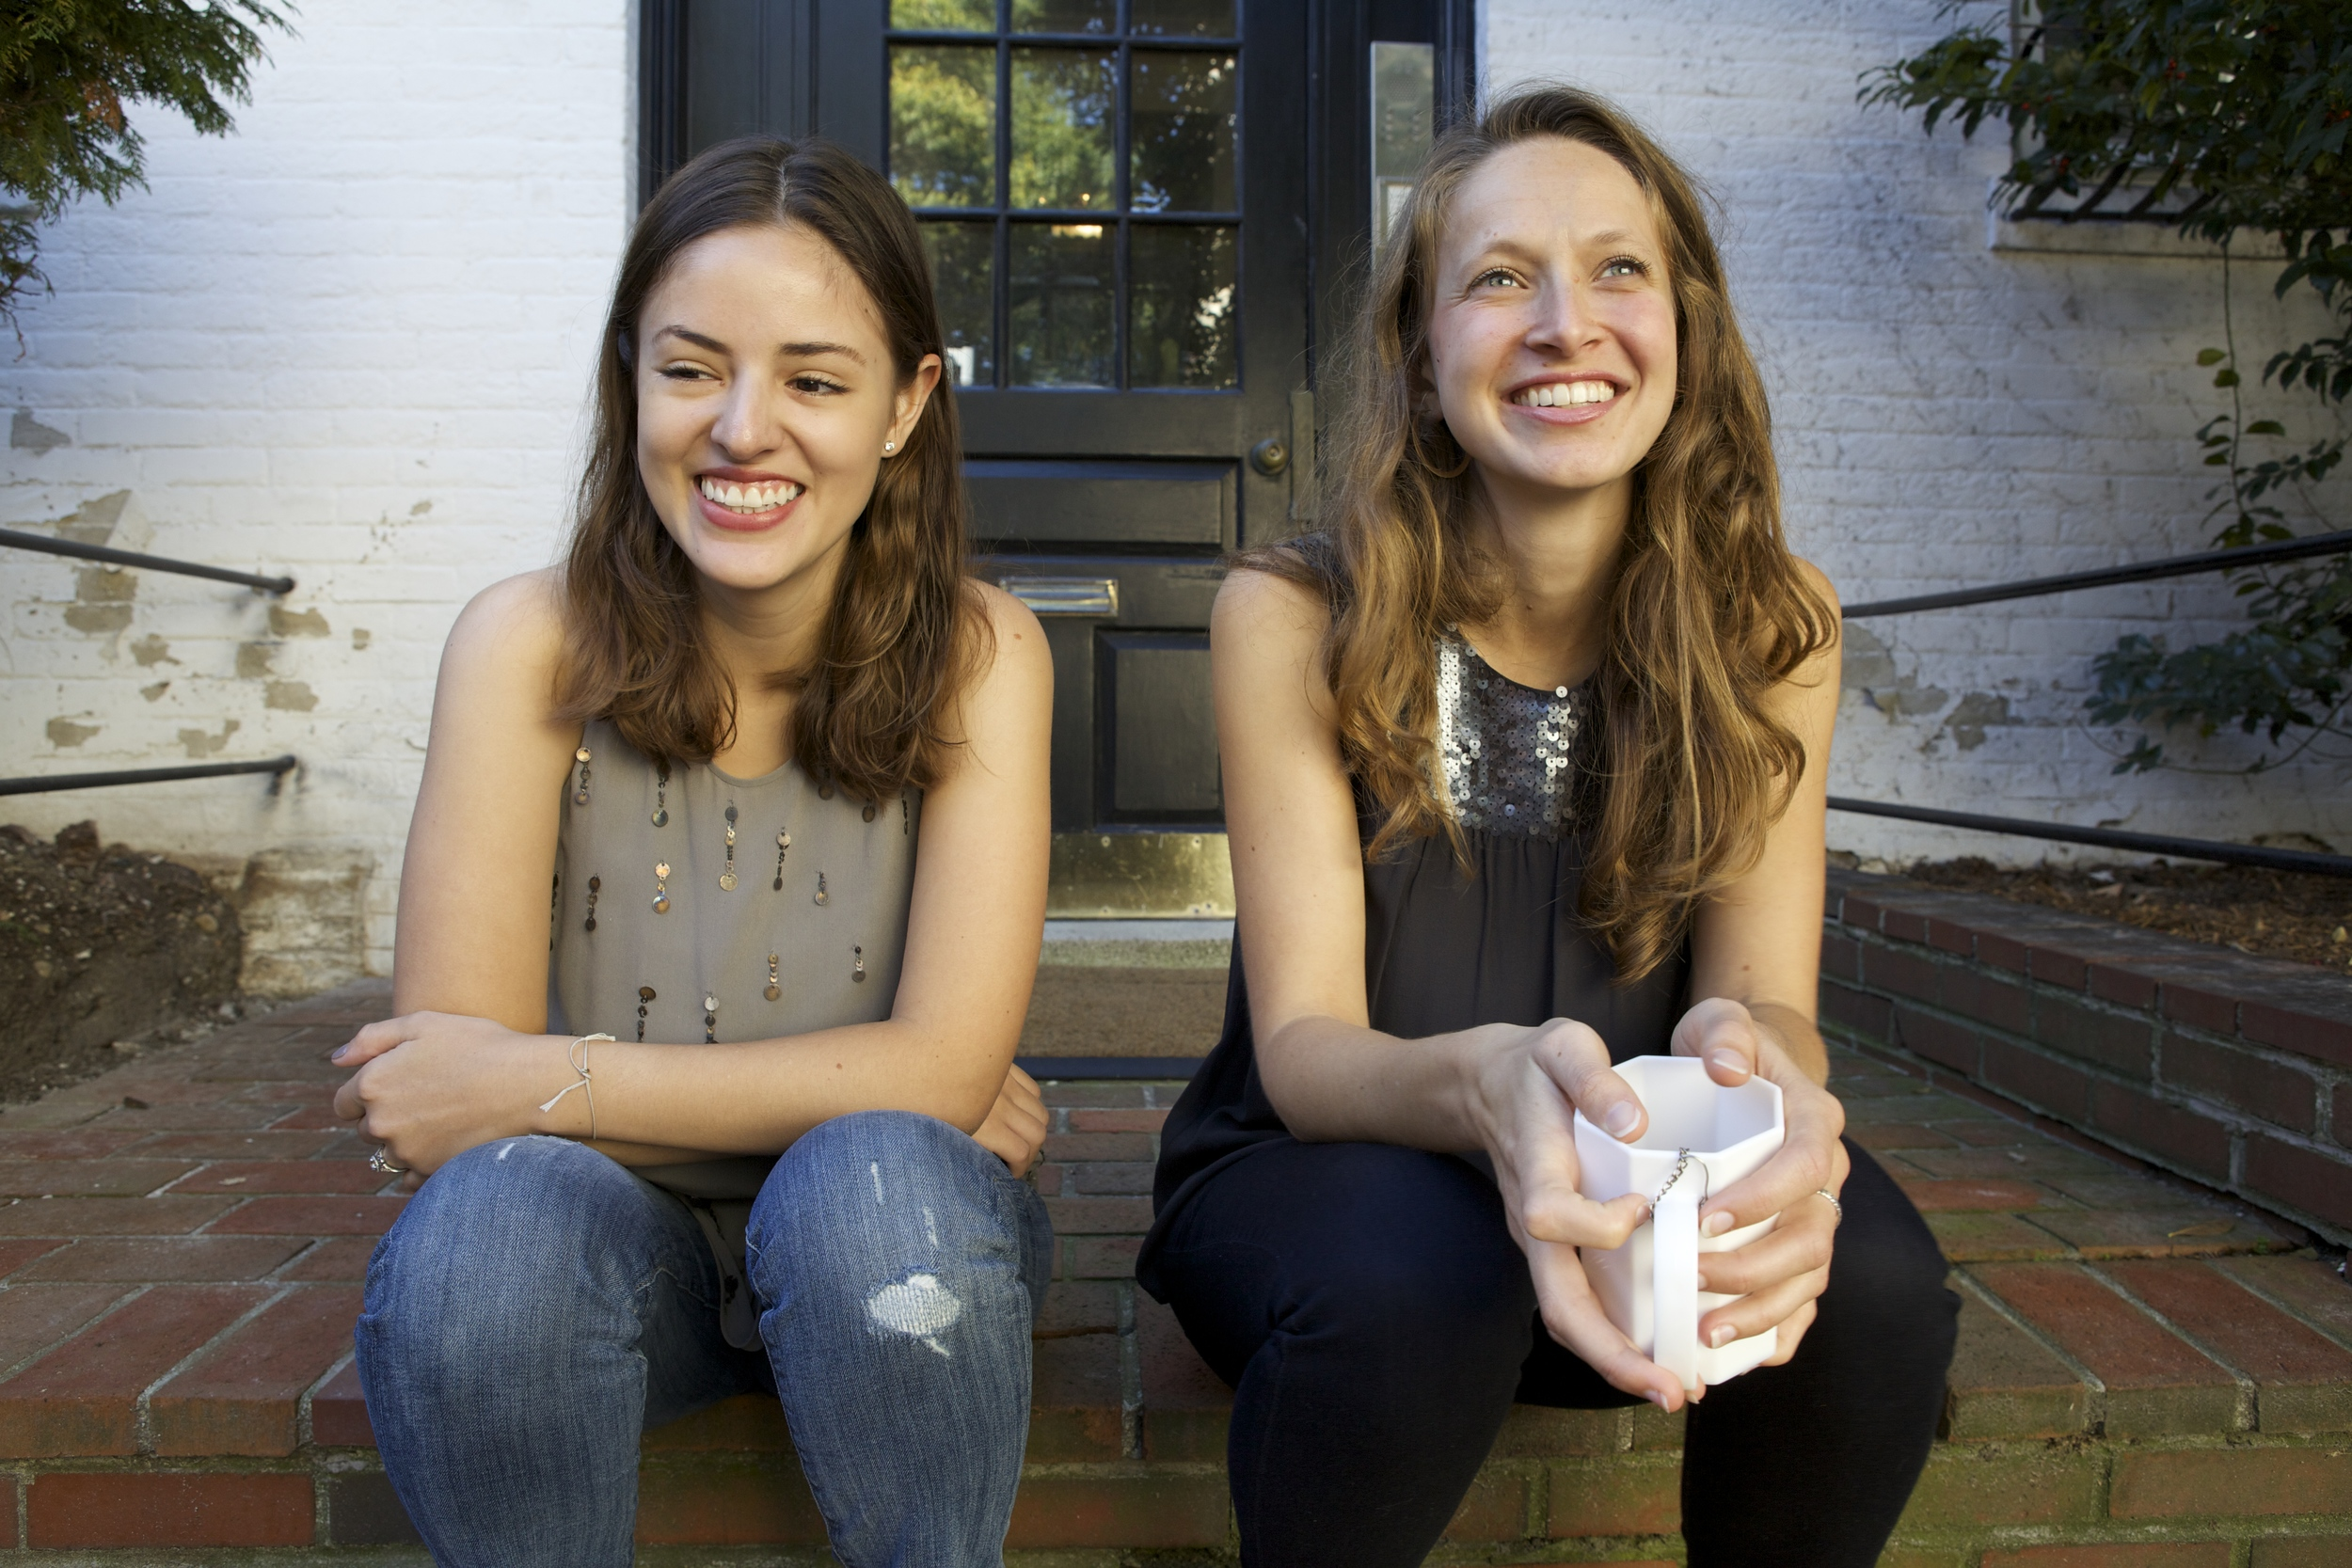 isabel bonenfant (left) and kate kellman (right), founders of of  note stationers,  a boston based paper goods company specializing in the art of written note.